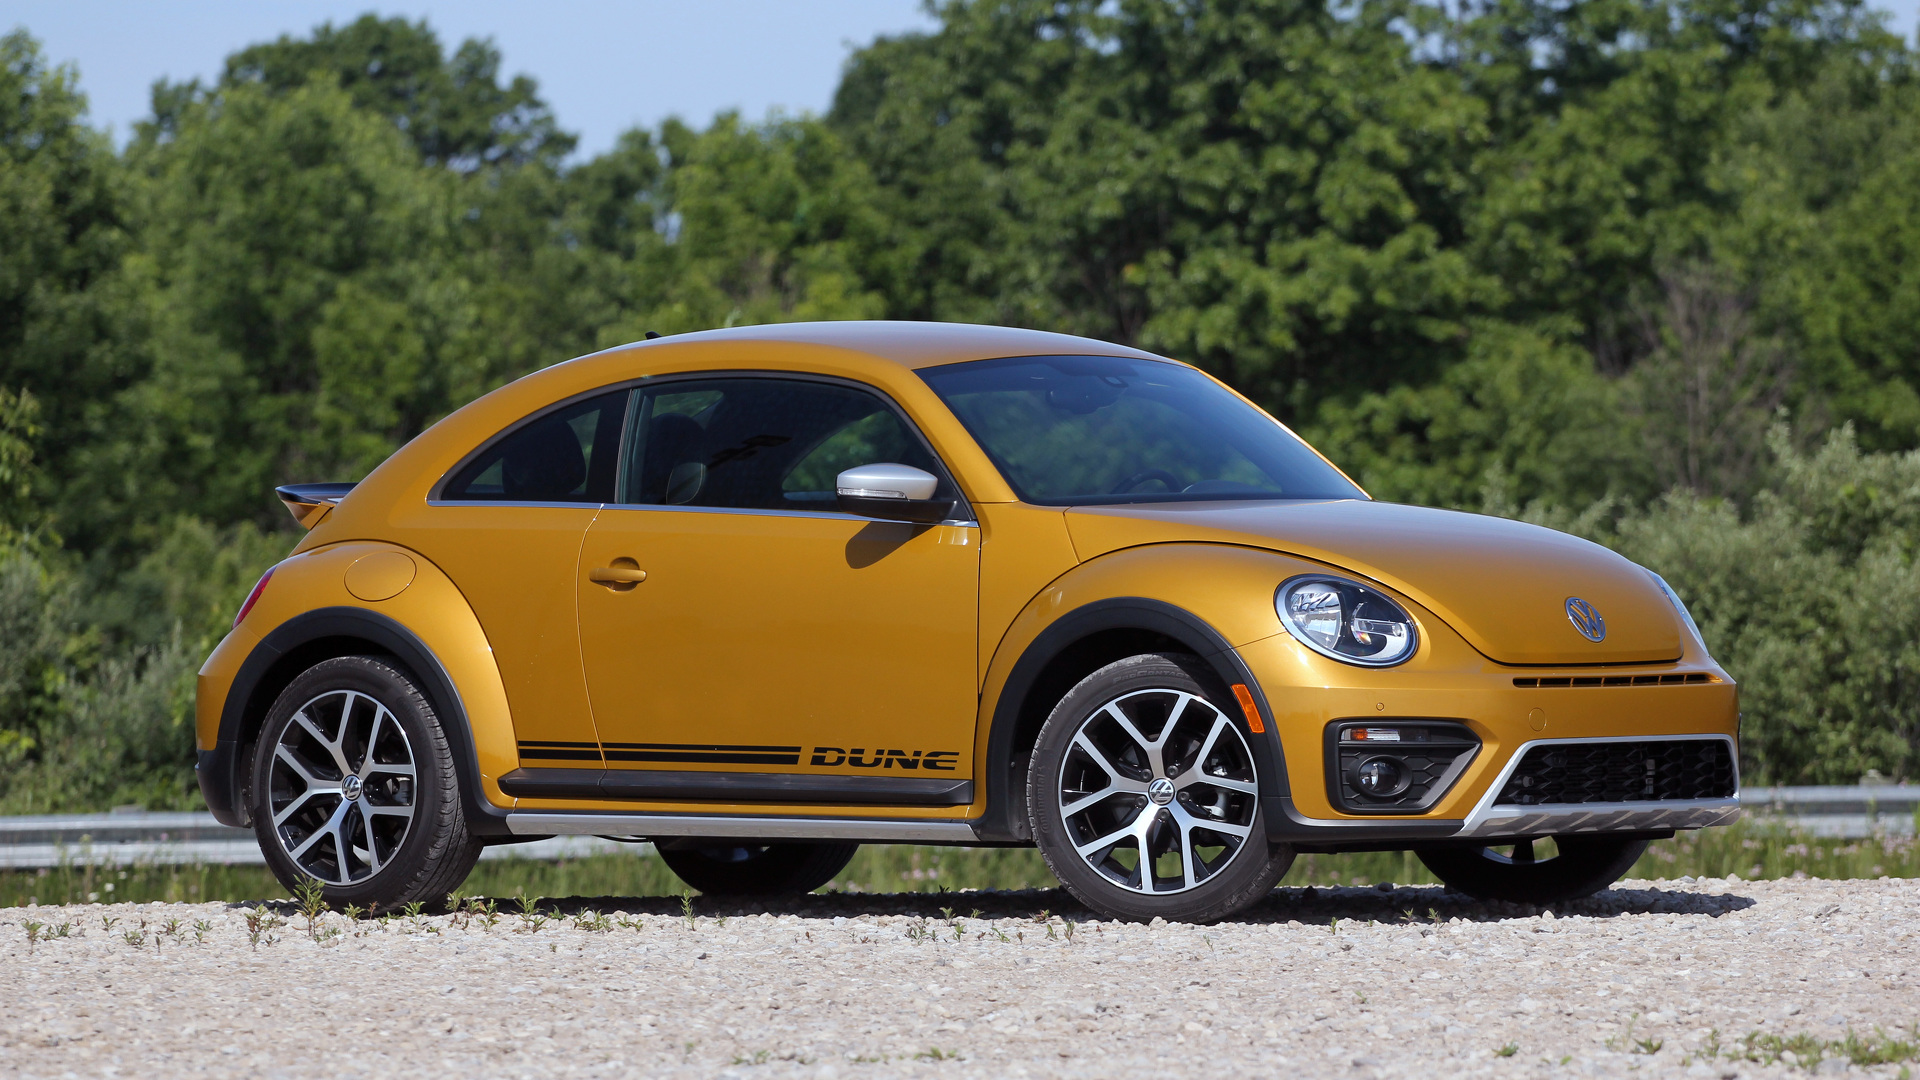 2016 Vw Beetle Dune Review A Fun Look Thats All Facade